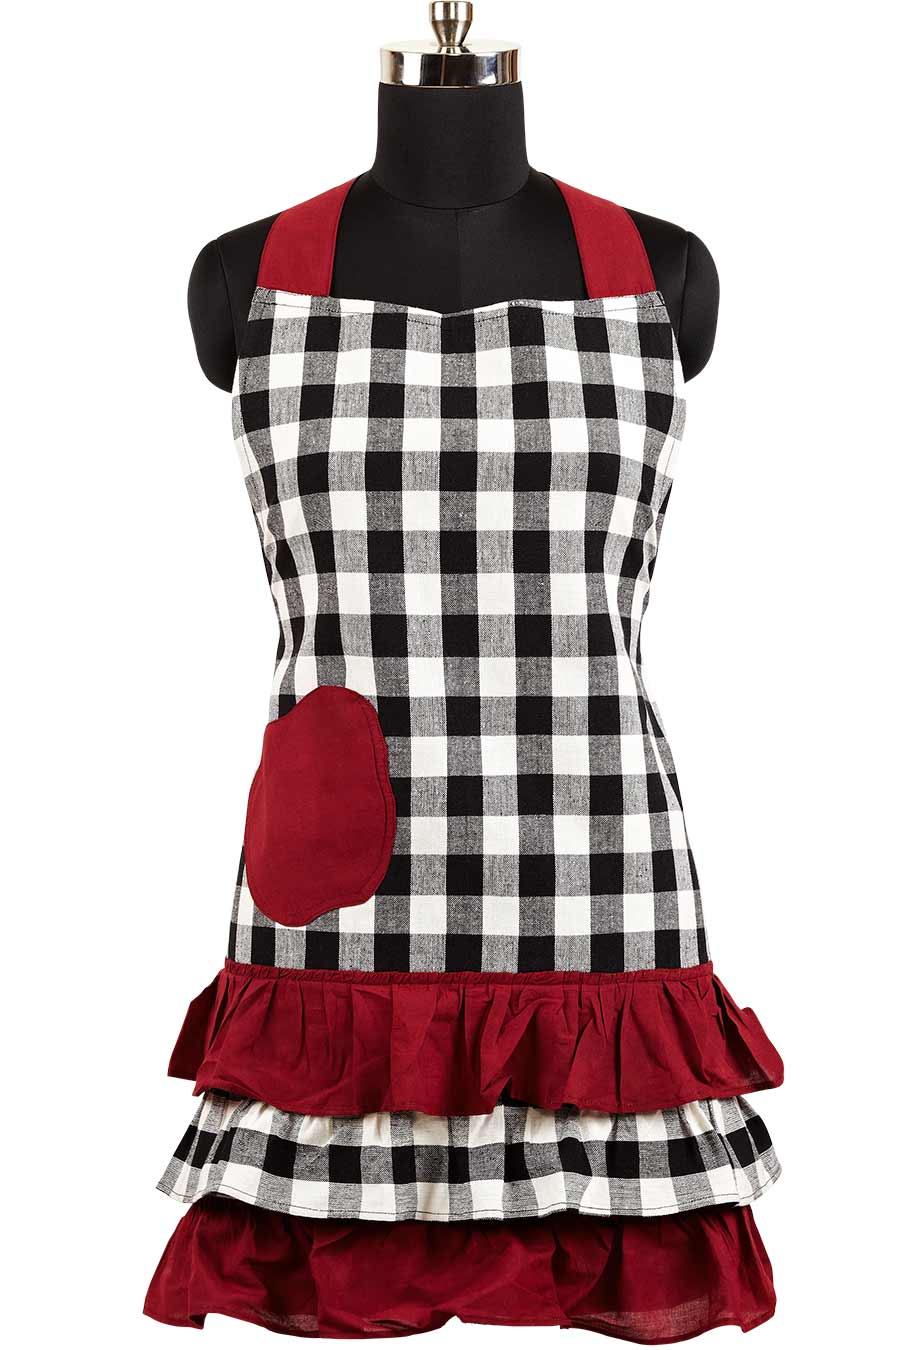 Apple Harvest Ruffled Apron